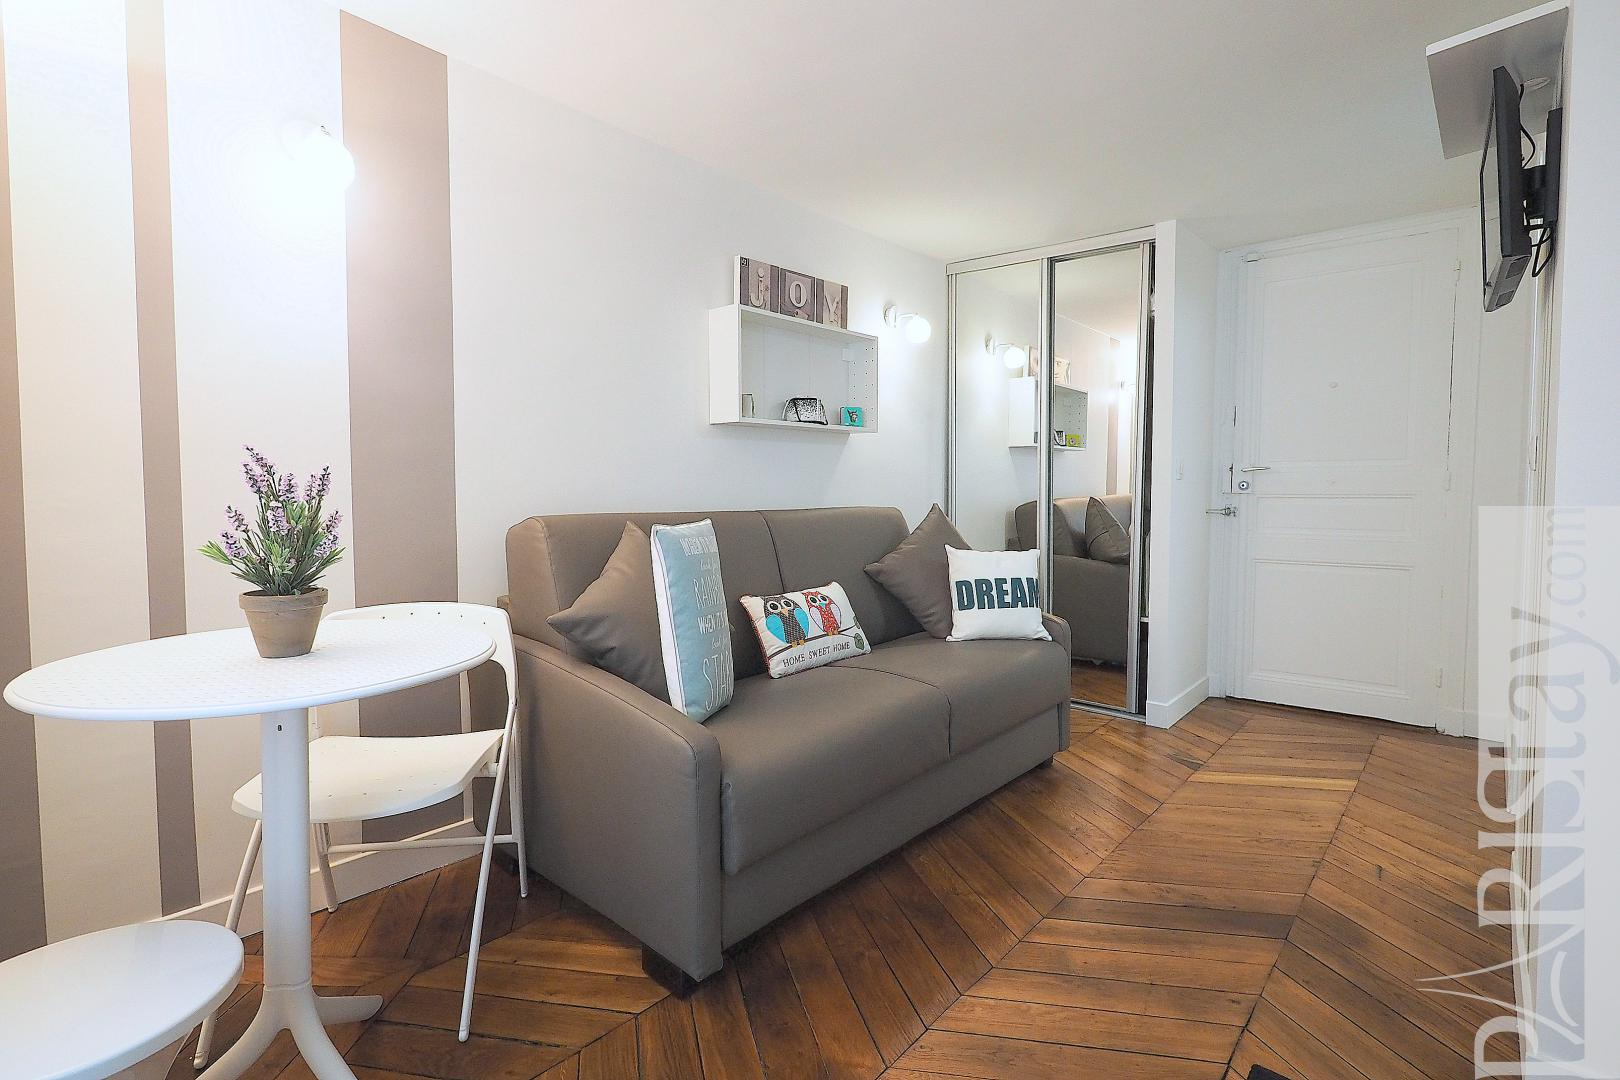 Apartment for rent in Paris furnished studio Louvre